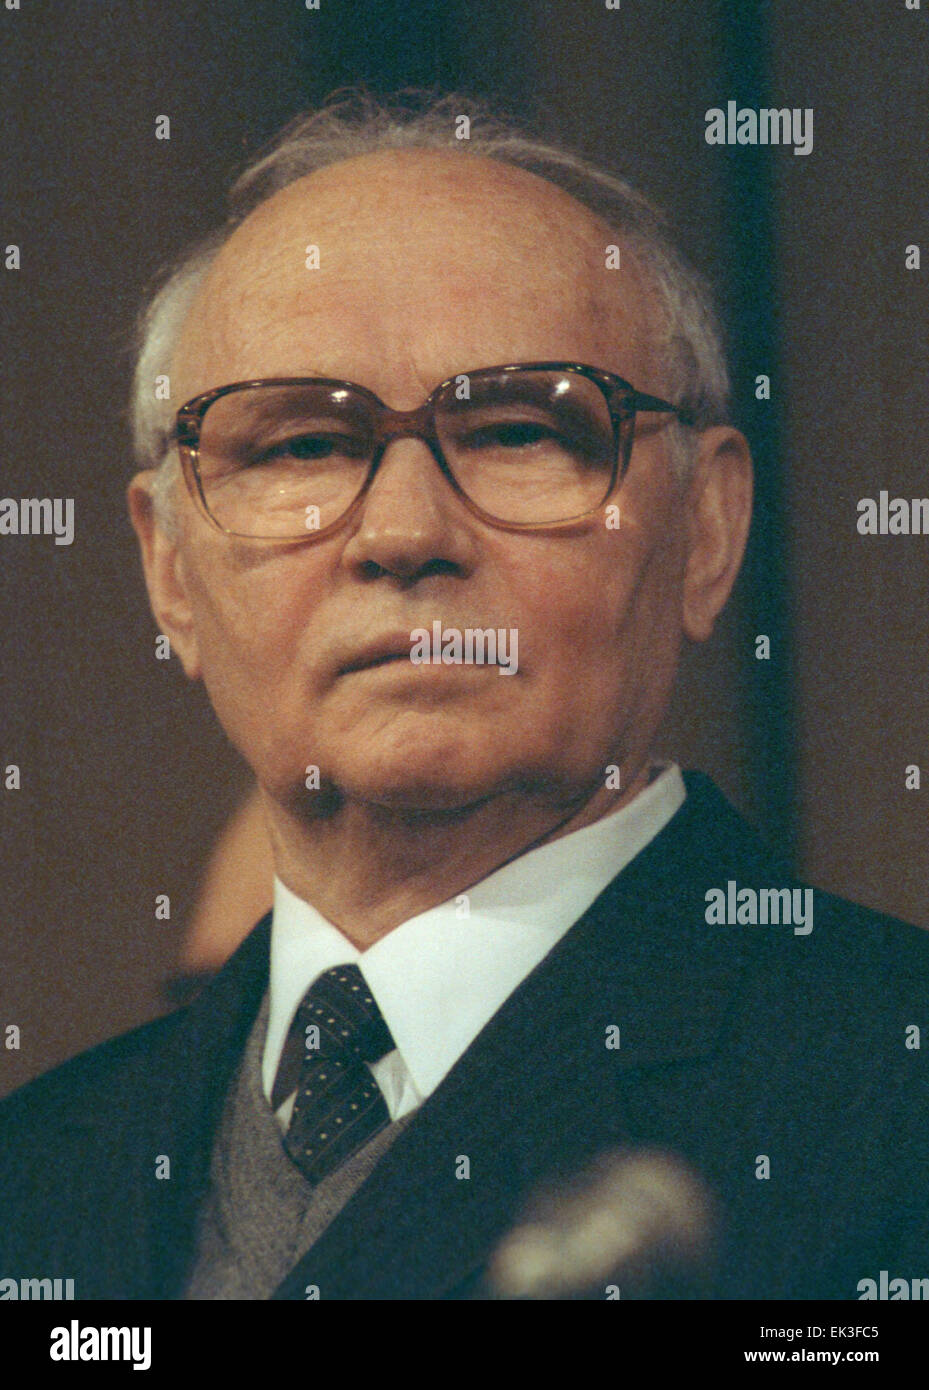 MOSCOW. Pictured here is former KGB chairman Vladimir Alexandrovich Kryuchkov in office 1988 - 1991. - Stock Image